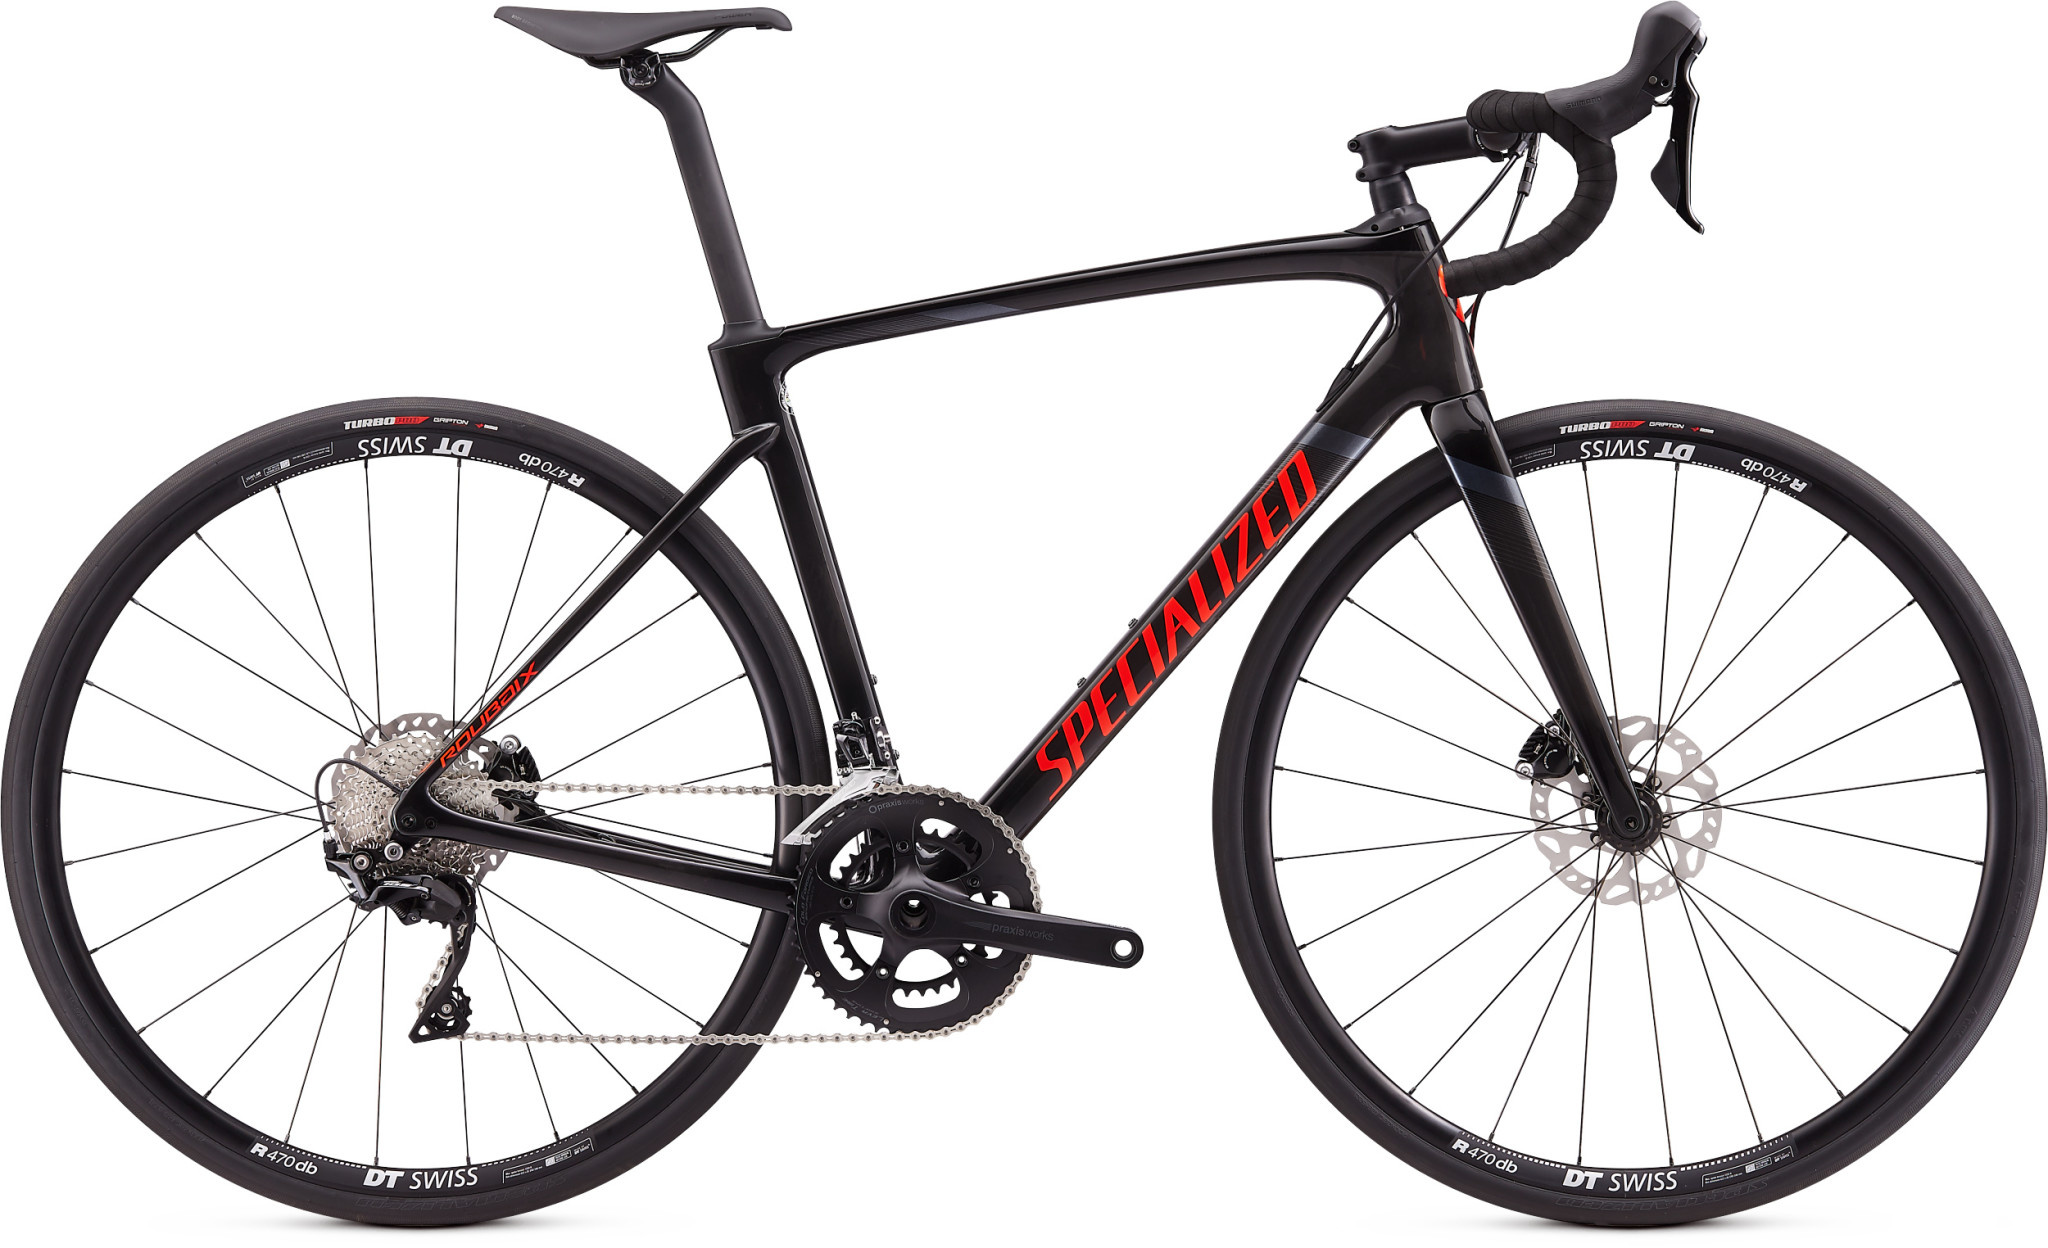 20 ROUBAIX SPORT CARB/RKTRED/BLK 54